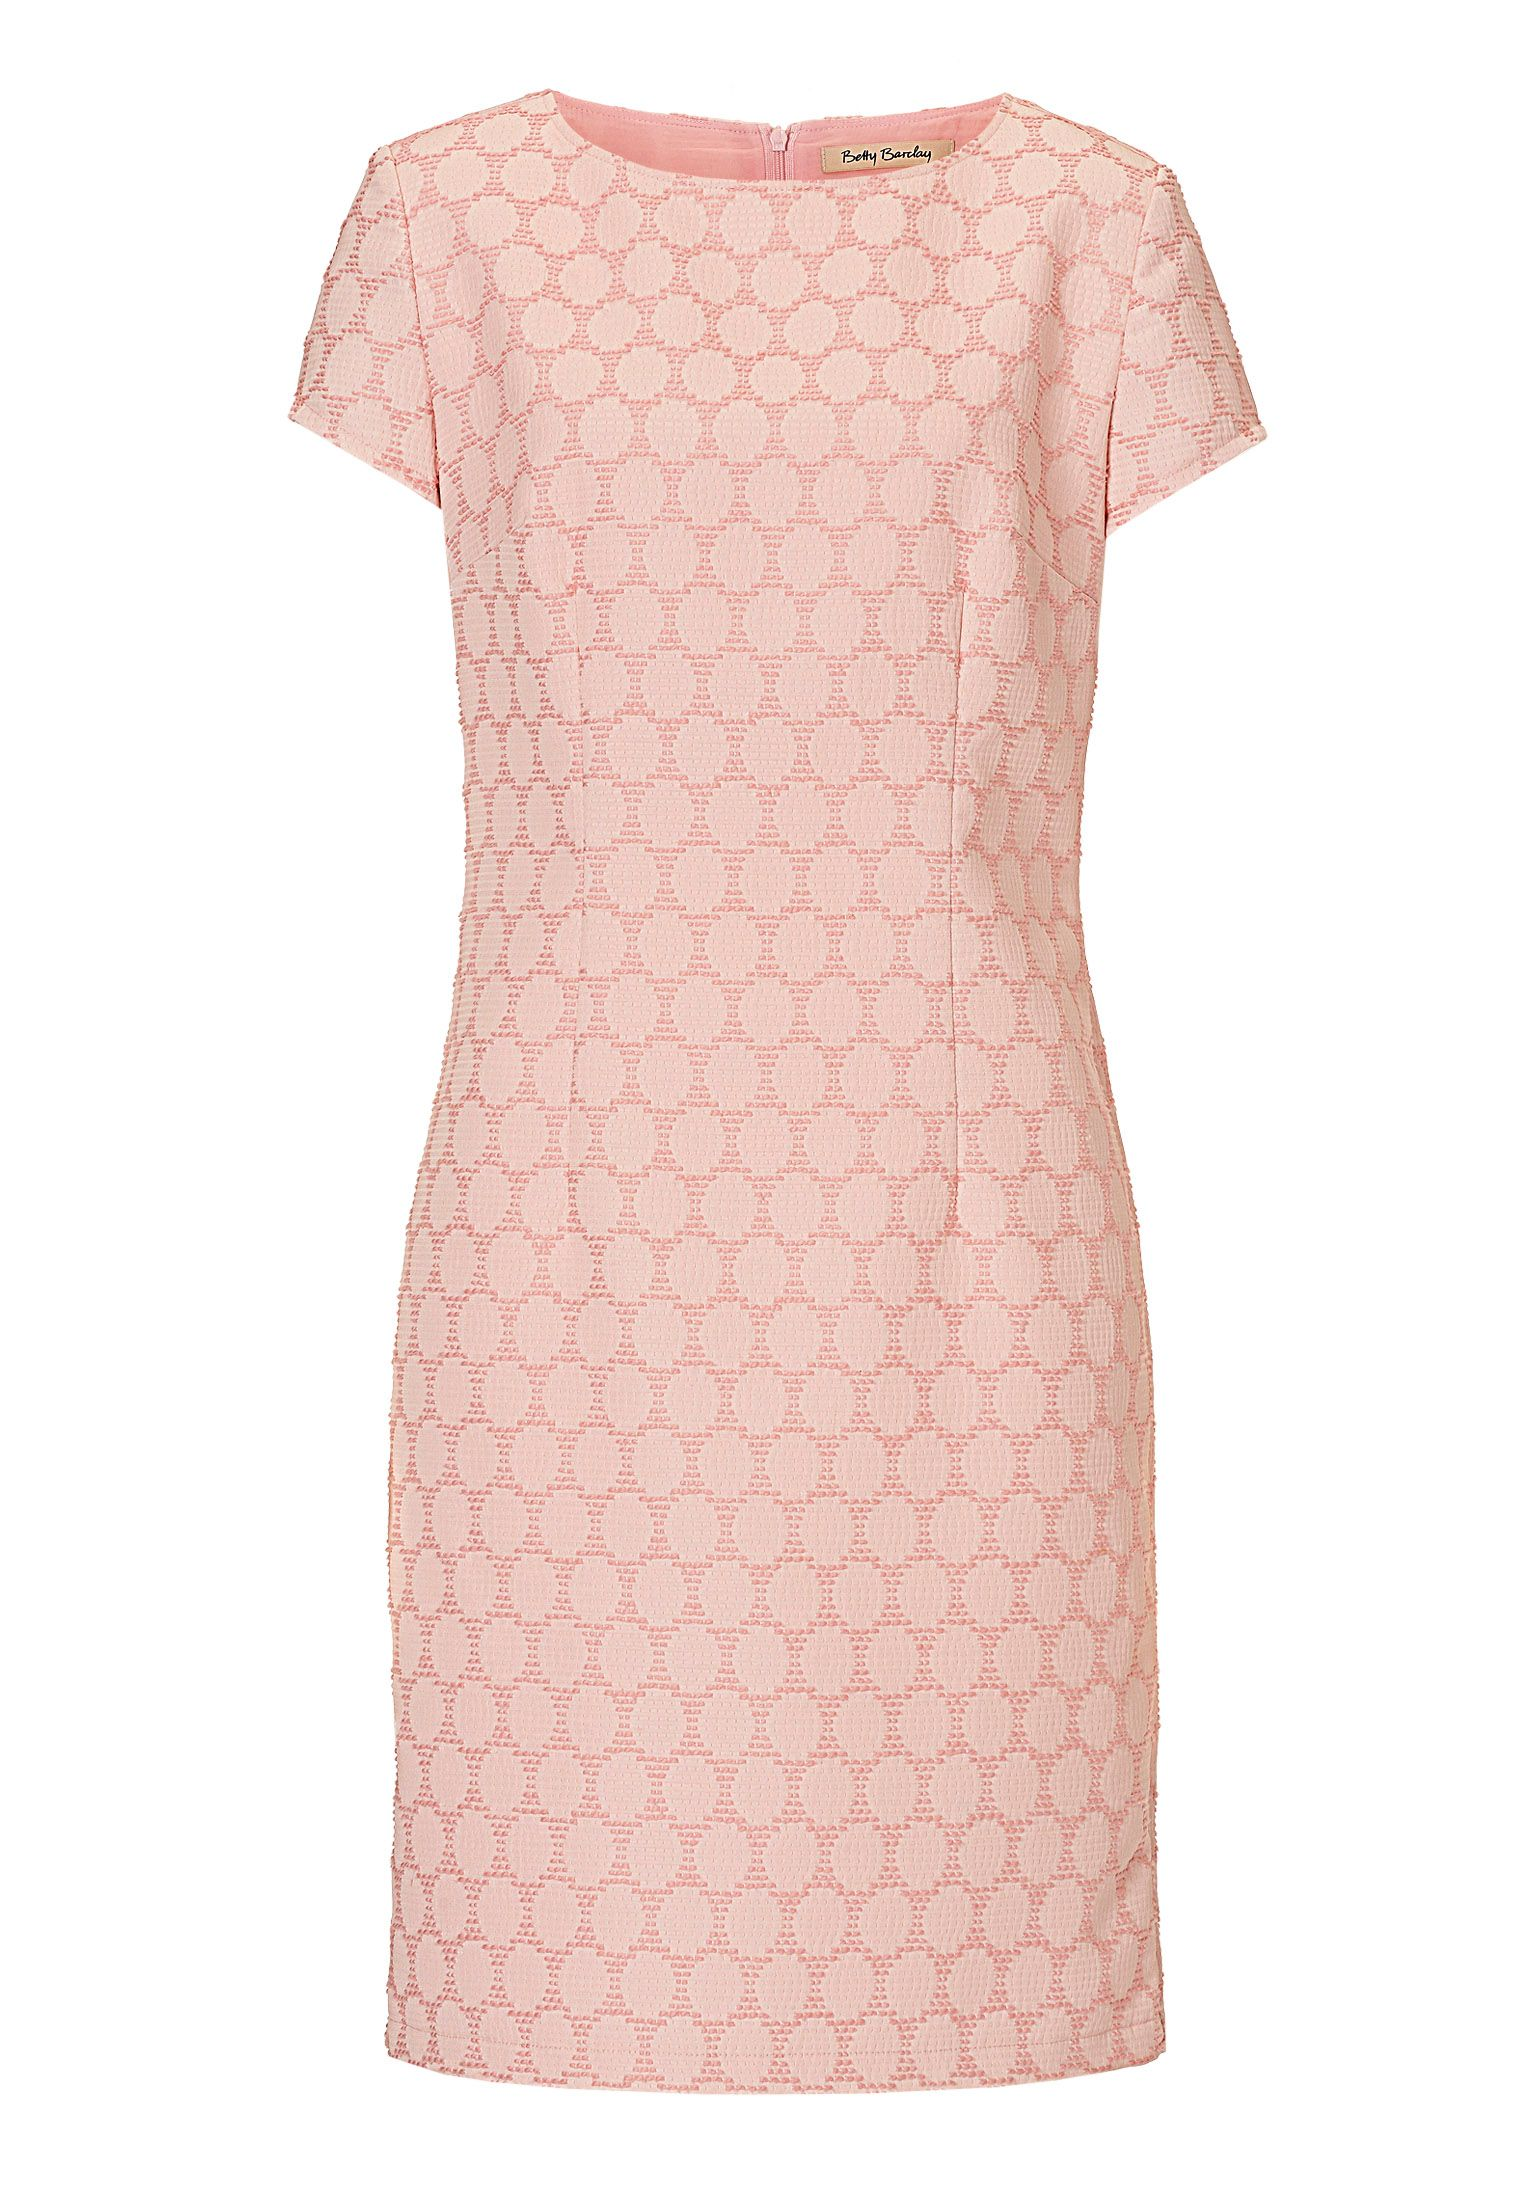 Betty Barclay Textured shift dress, Cream